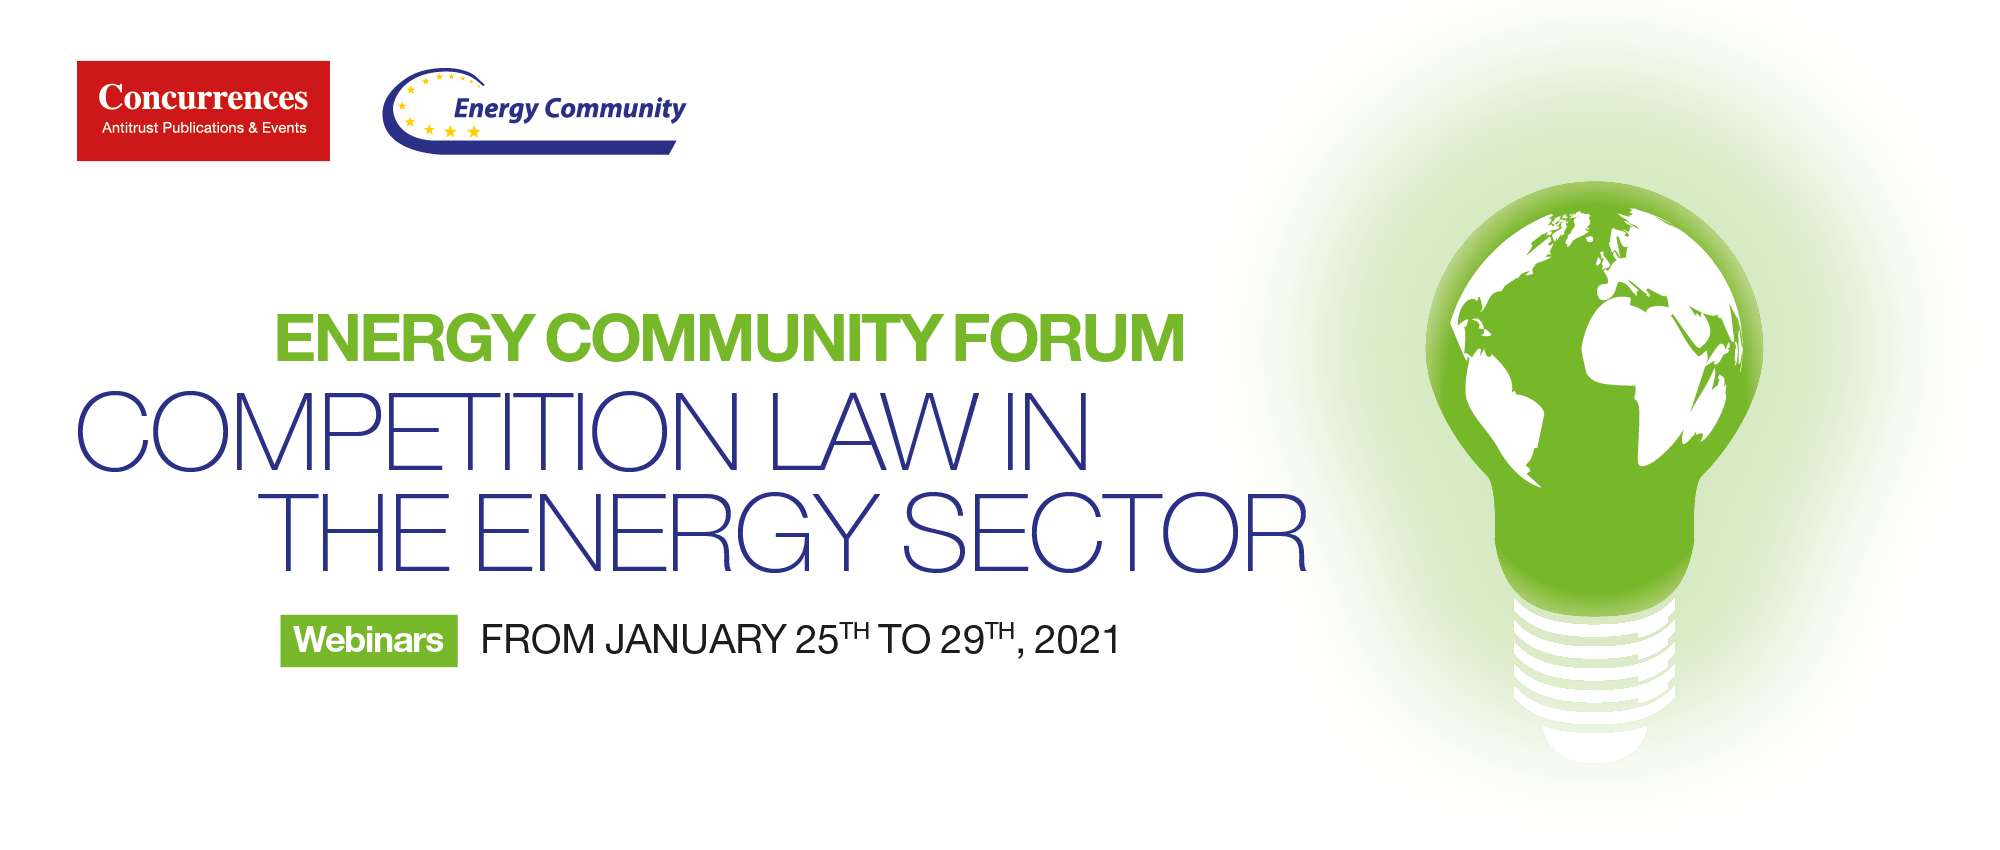 https://events.concurrences.com/fr/energy-community-forum?lang=fr